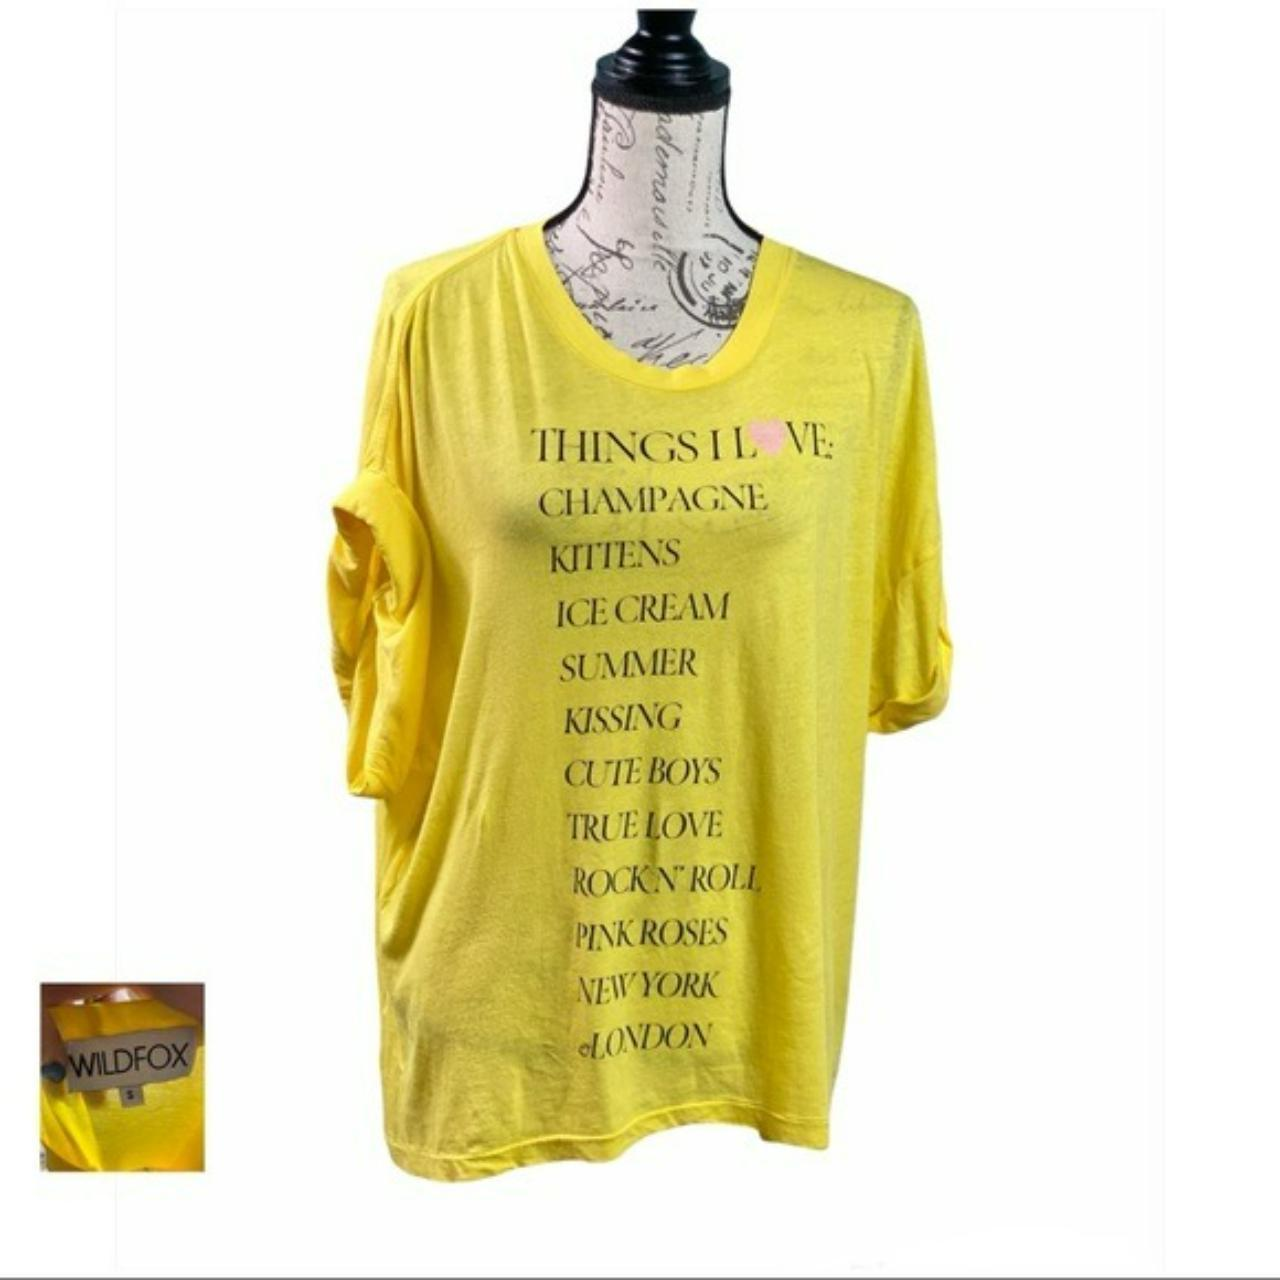 Product Image 1 - Wildfox's tee brings a splash